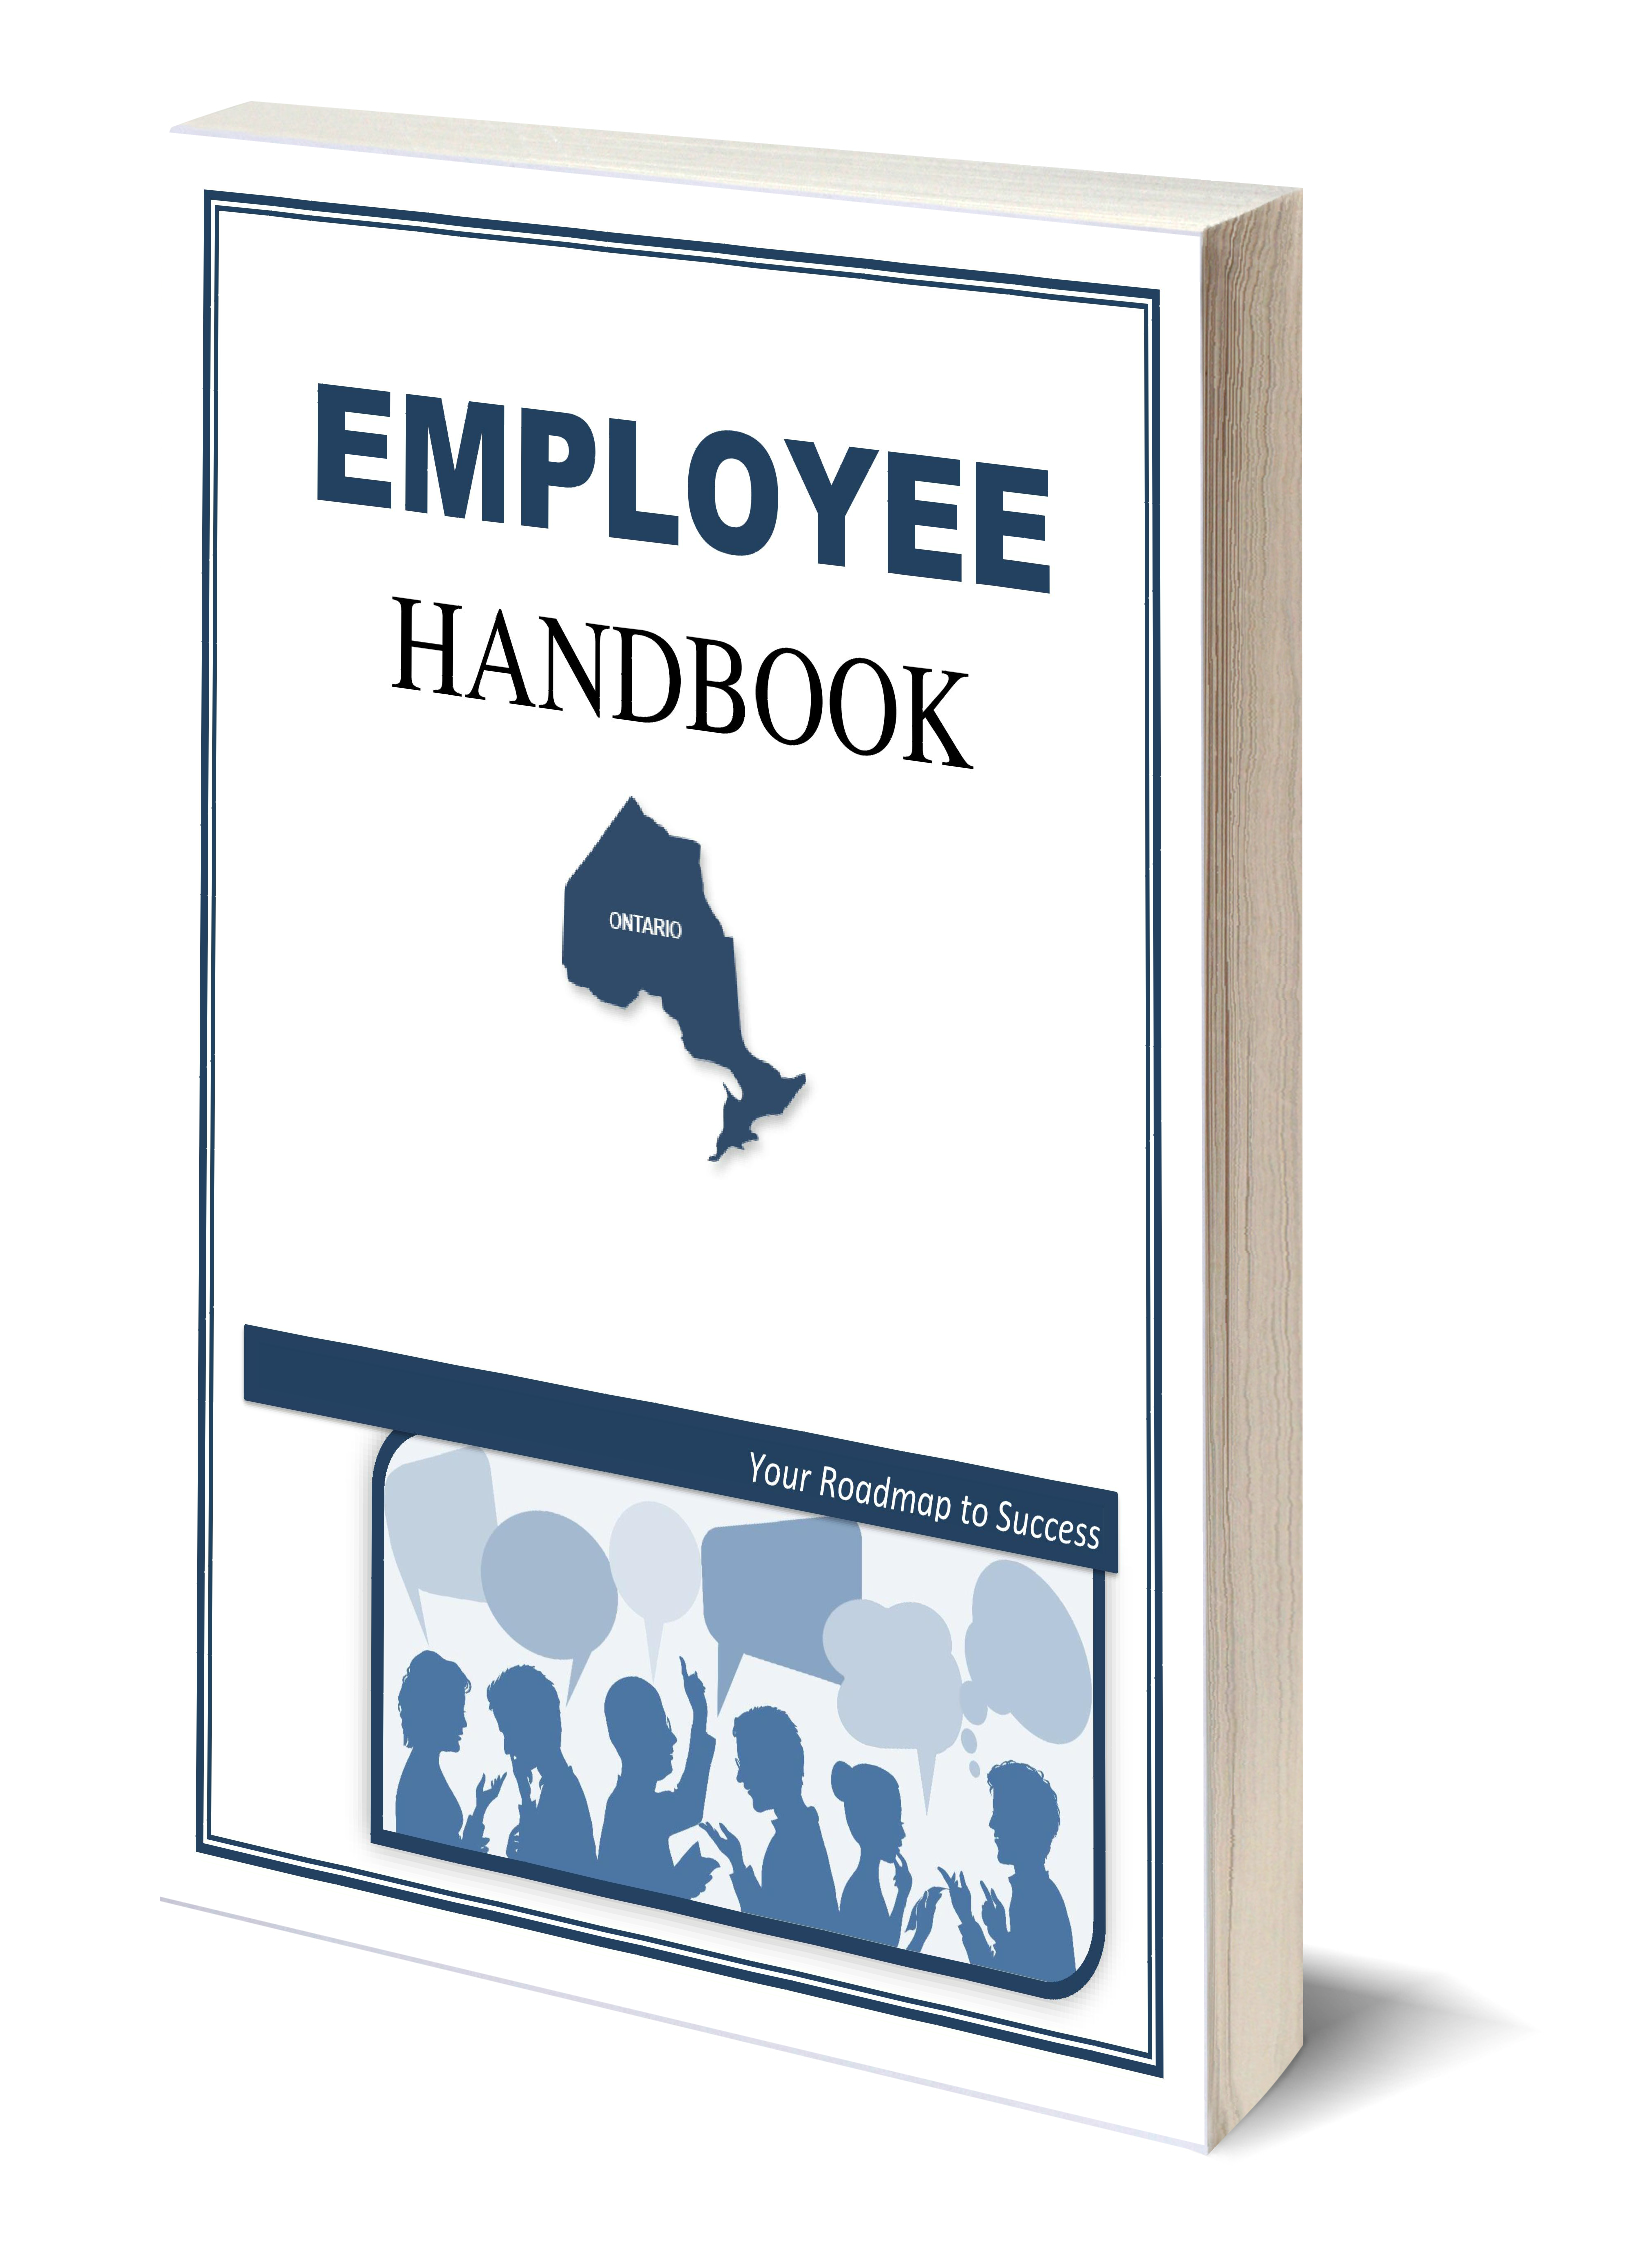 Ontario employee handbook workwise consulting group this product is a digital download not a physical product giving you immediate access to the content click the image to view a sample of accmission Images